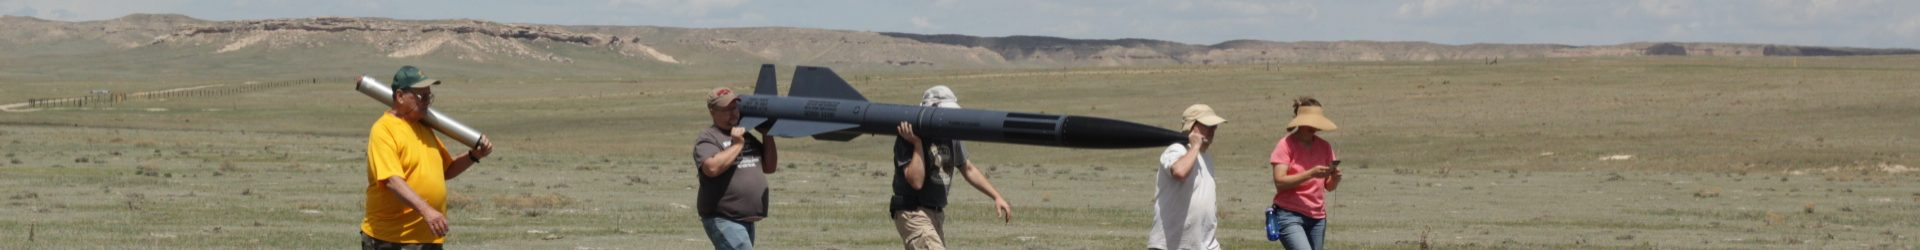 Northern Colorado Rocketry – Welcome Video